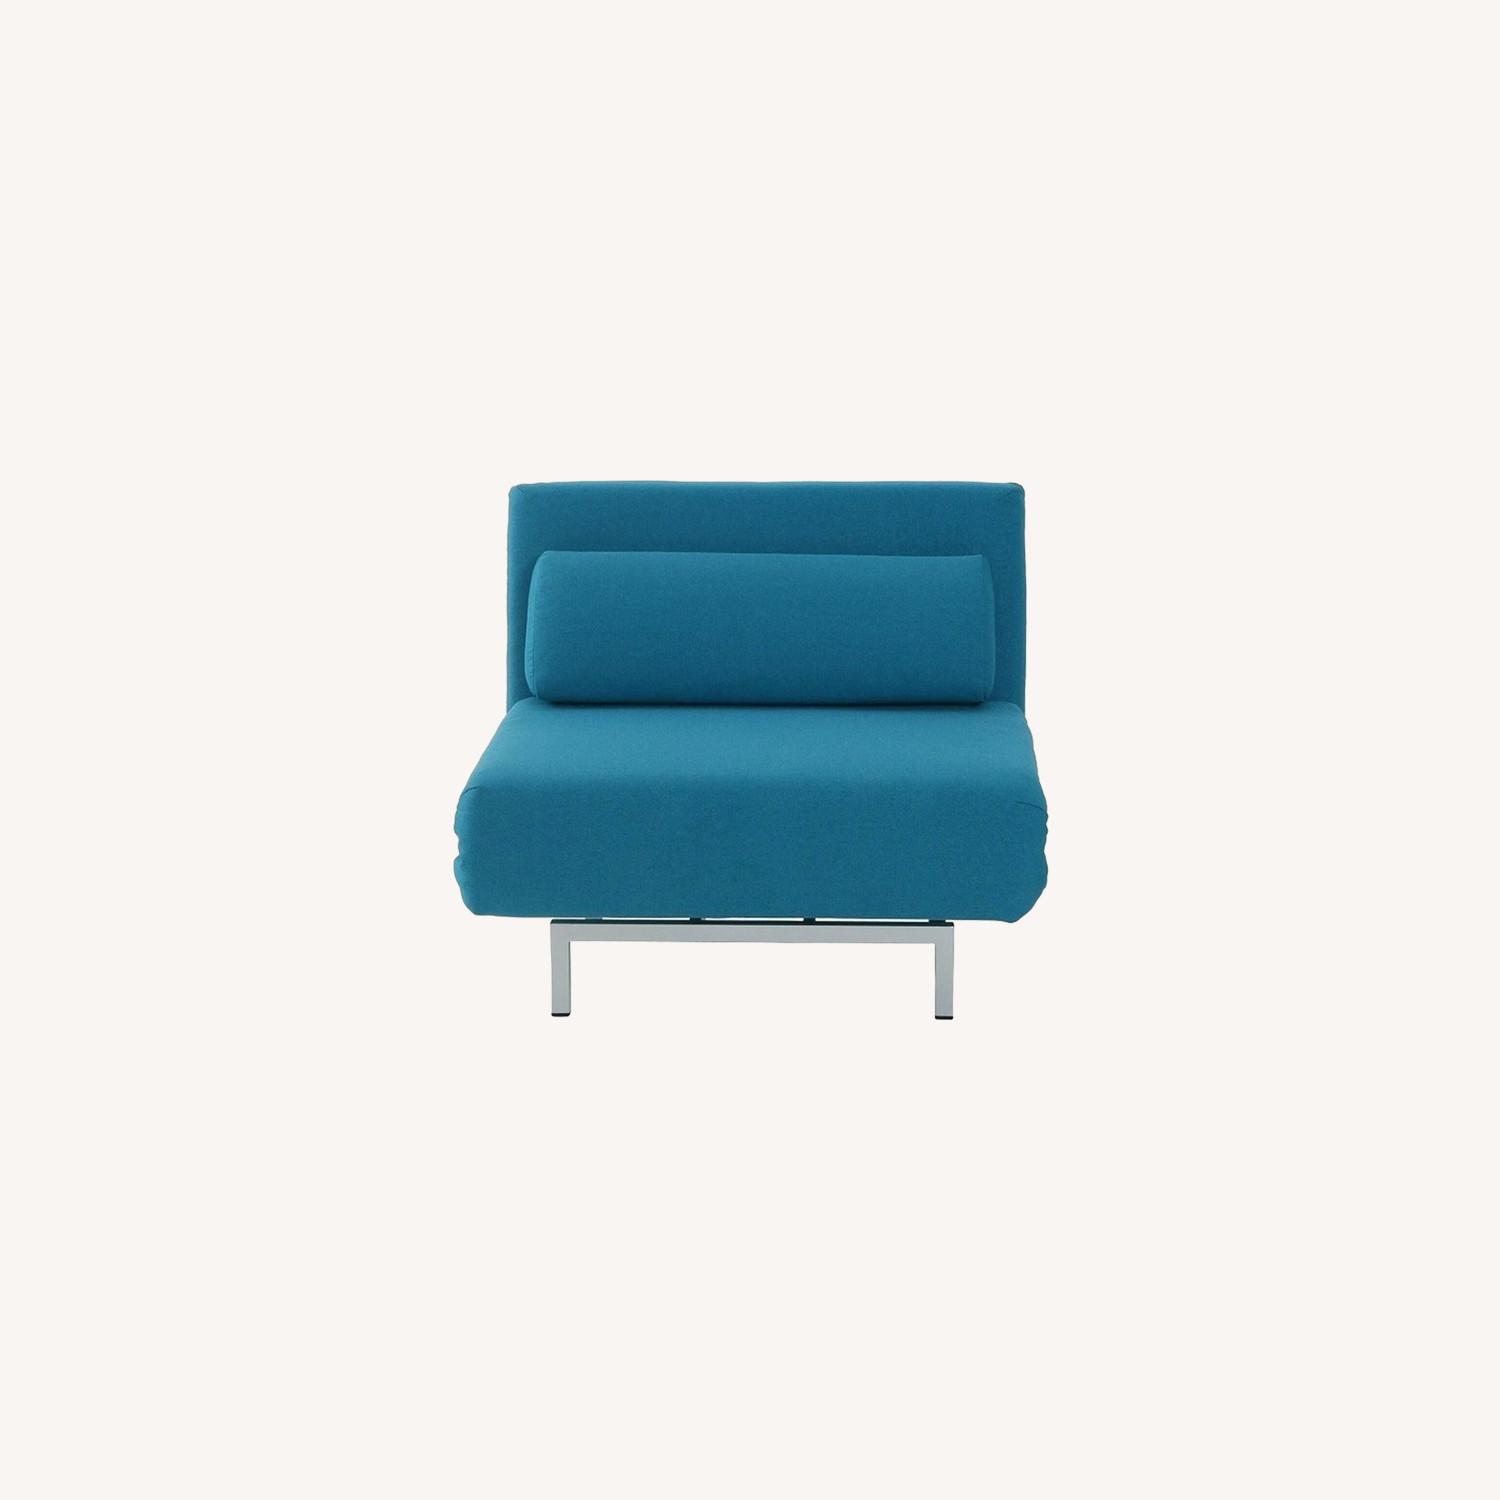 Convertible Sofa Bed In Teal Fabric Upholstery - image-5